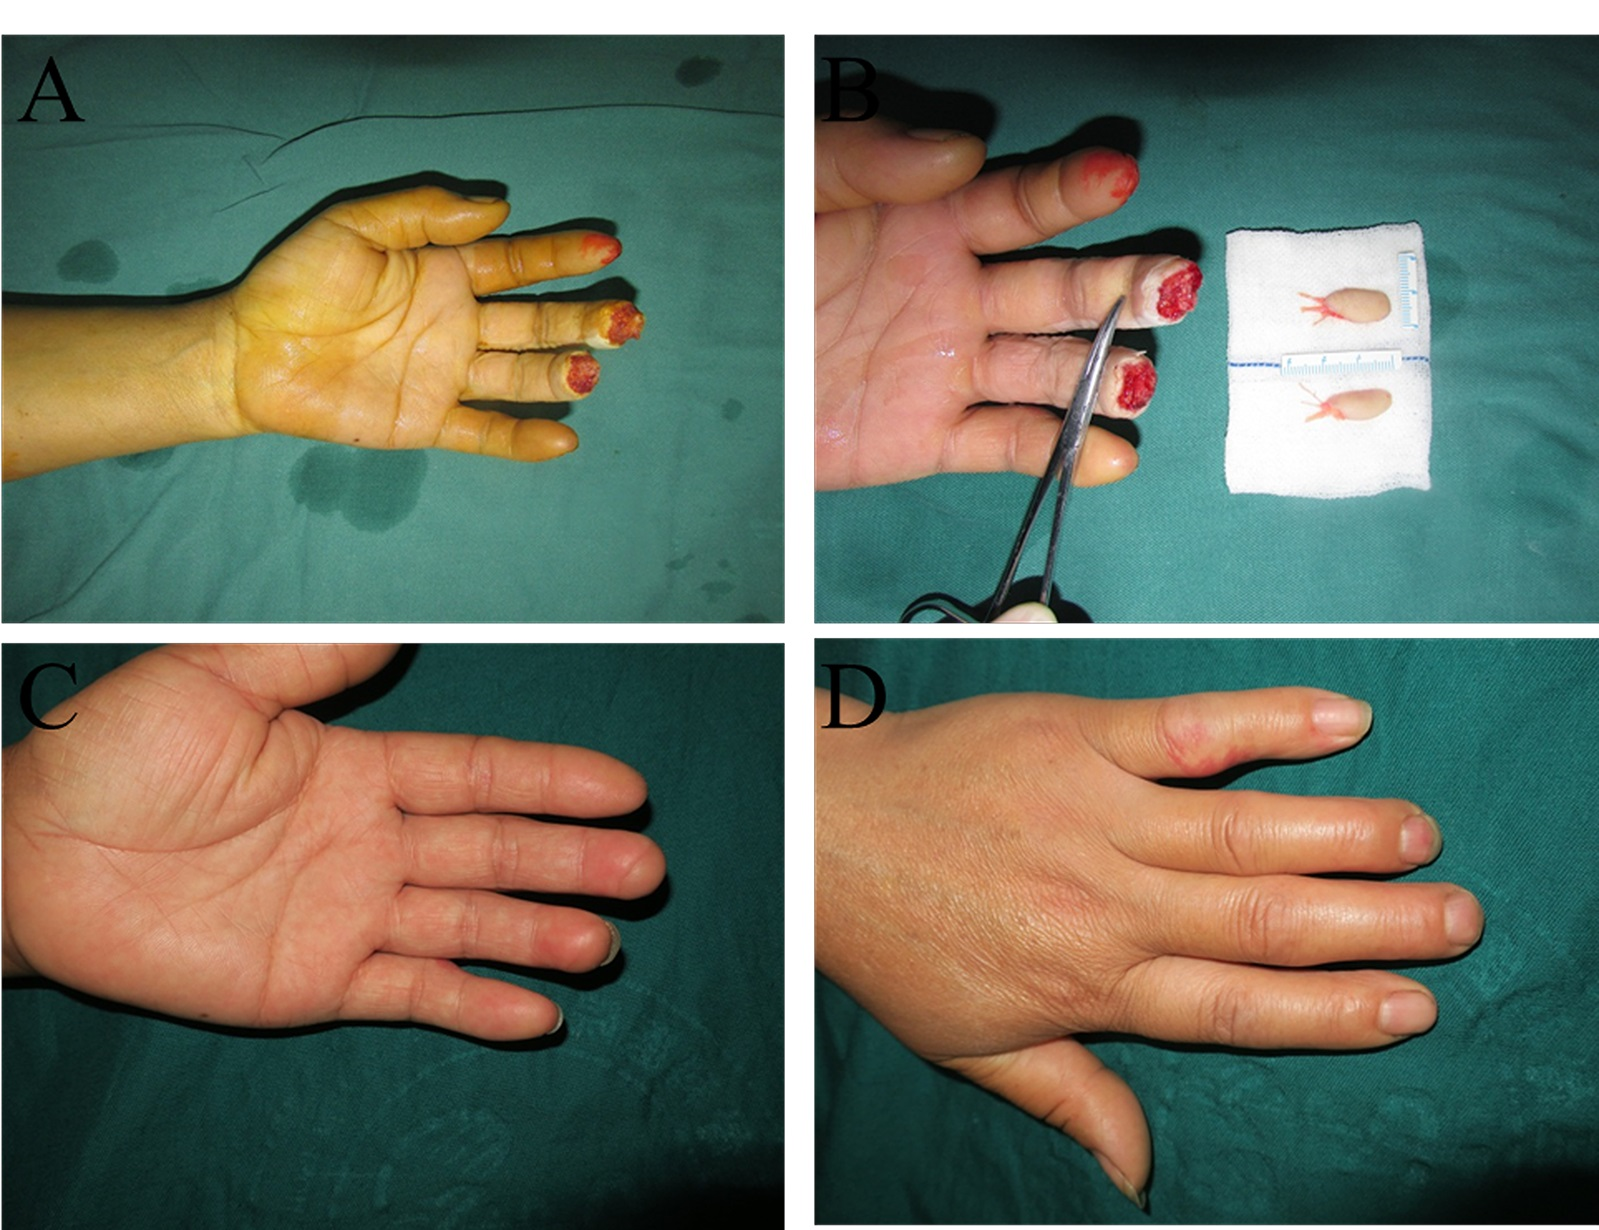 In this patient, the injured fingertips after debridement (A), the flaps before transplantation (B), and the volar (C) and dorsal (D) appearances after 6 months. In this case, the patient injured the left middle and ring fingertips. The middle finger received an artery-only free medial flap of the second toe, while the ring finger received a routine free medial flap of the third toe.